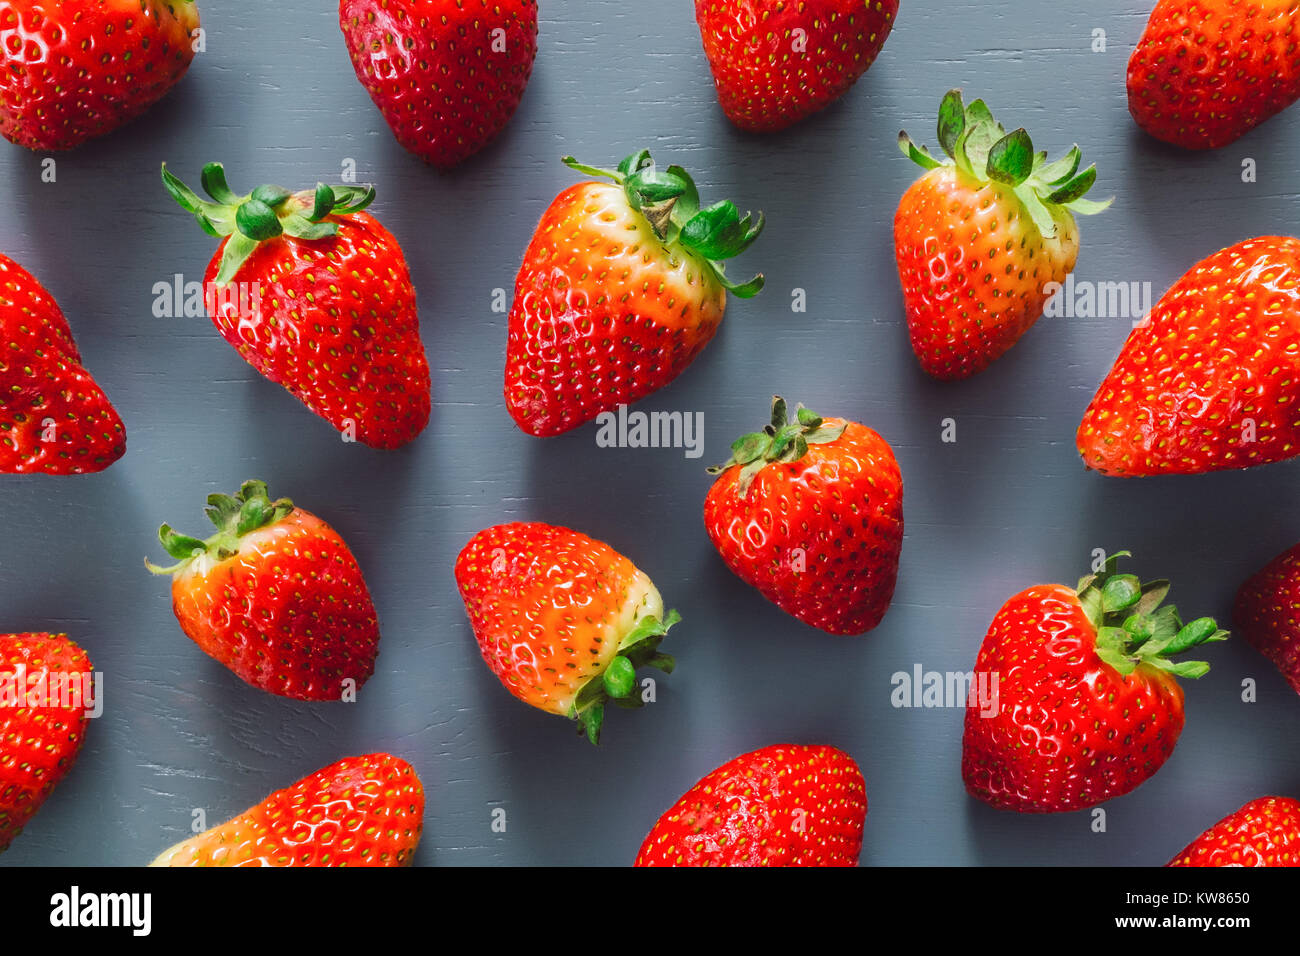 Fresh Strawberries on Blue Table - Stock Image